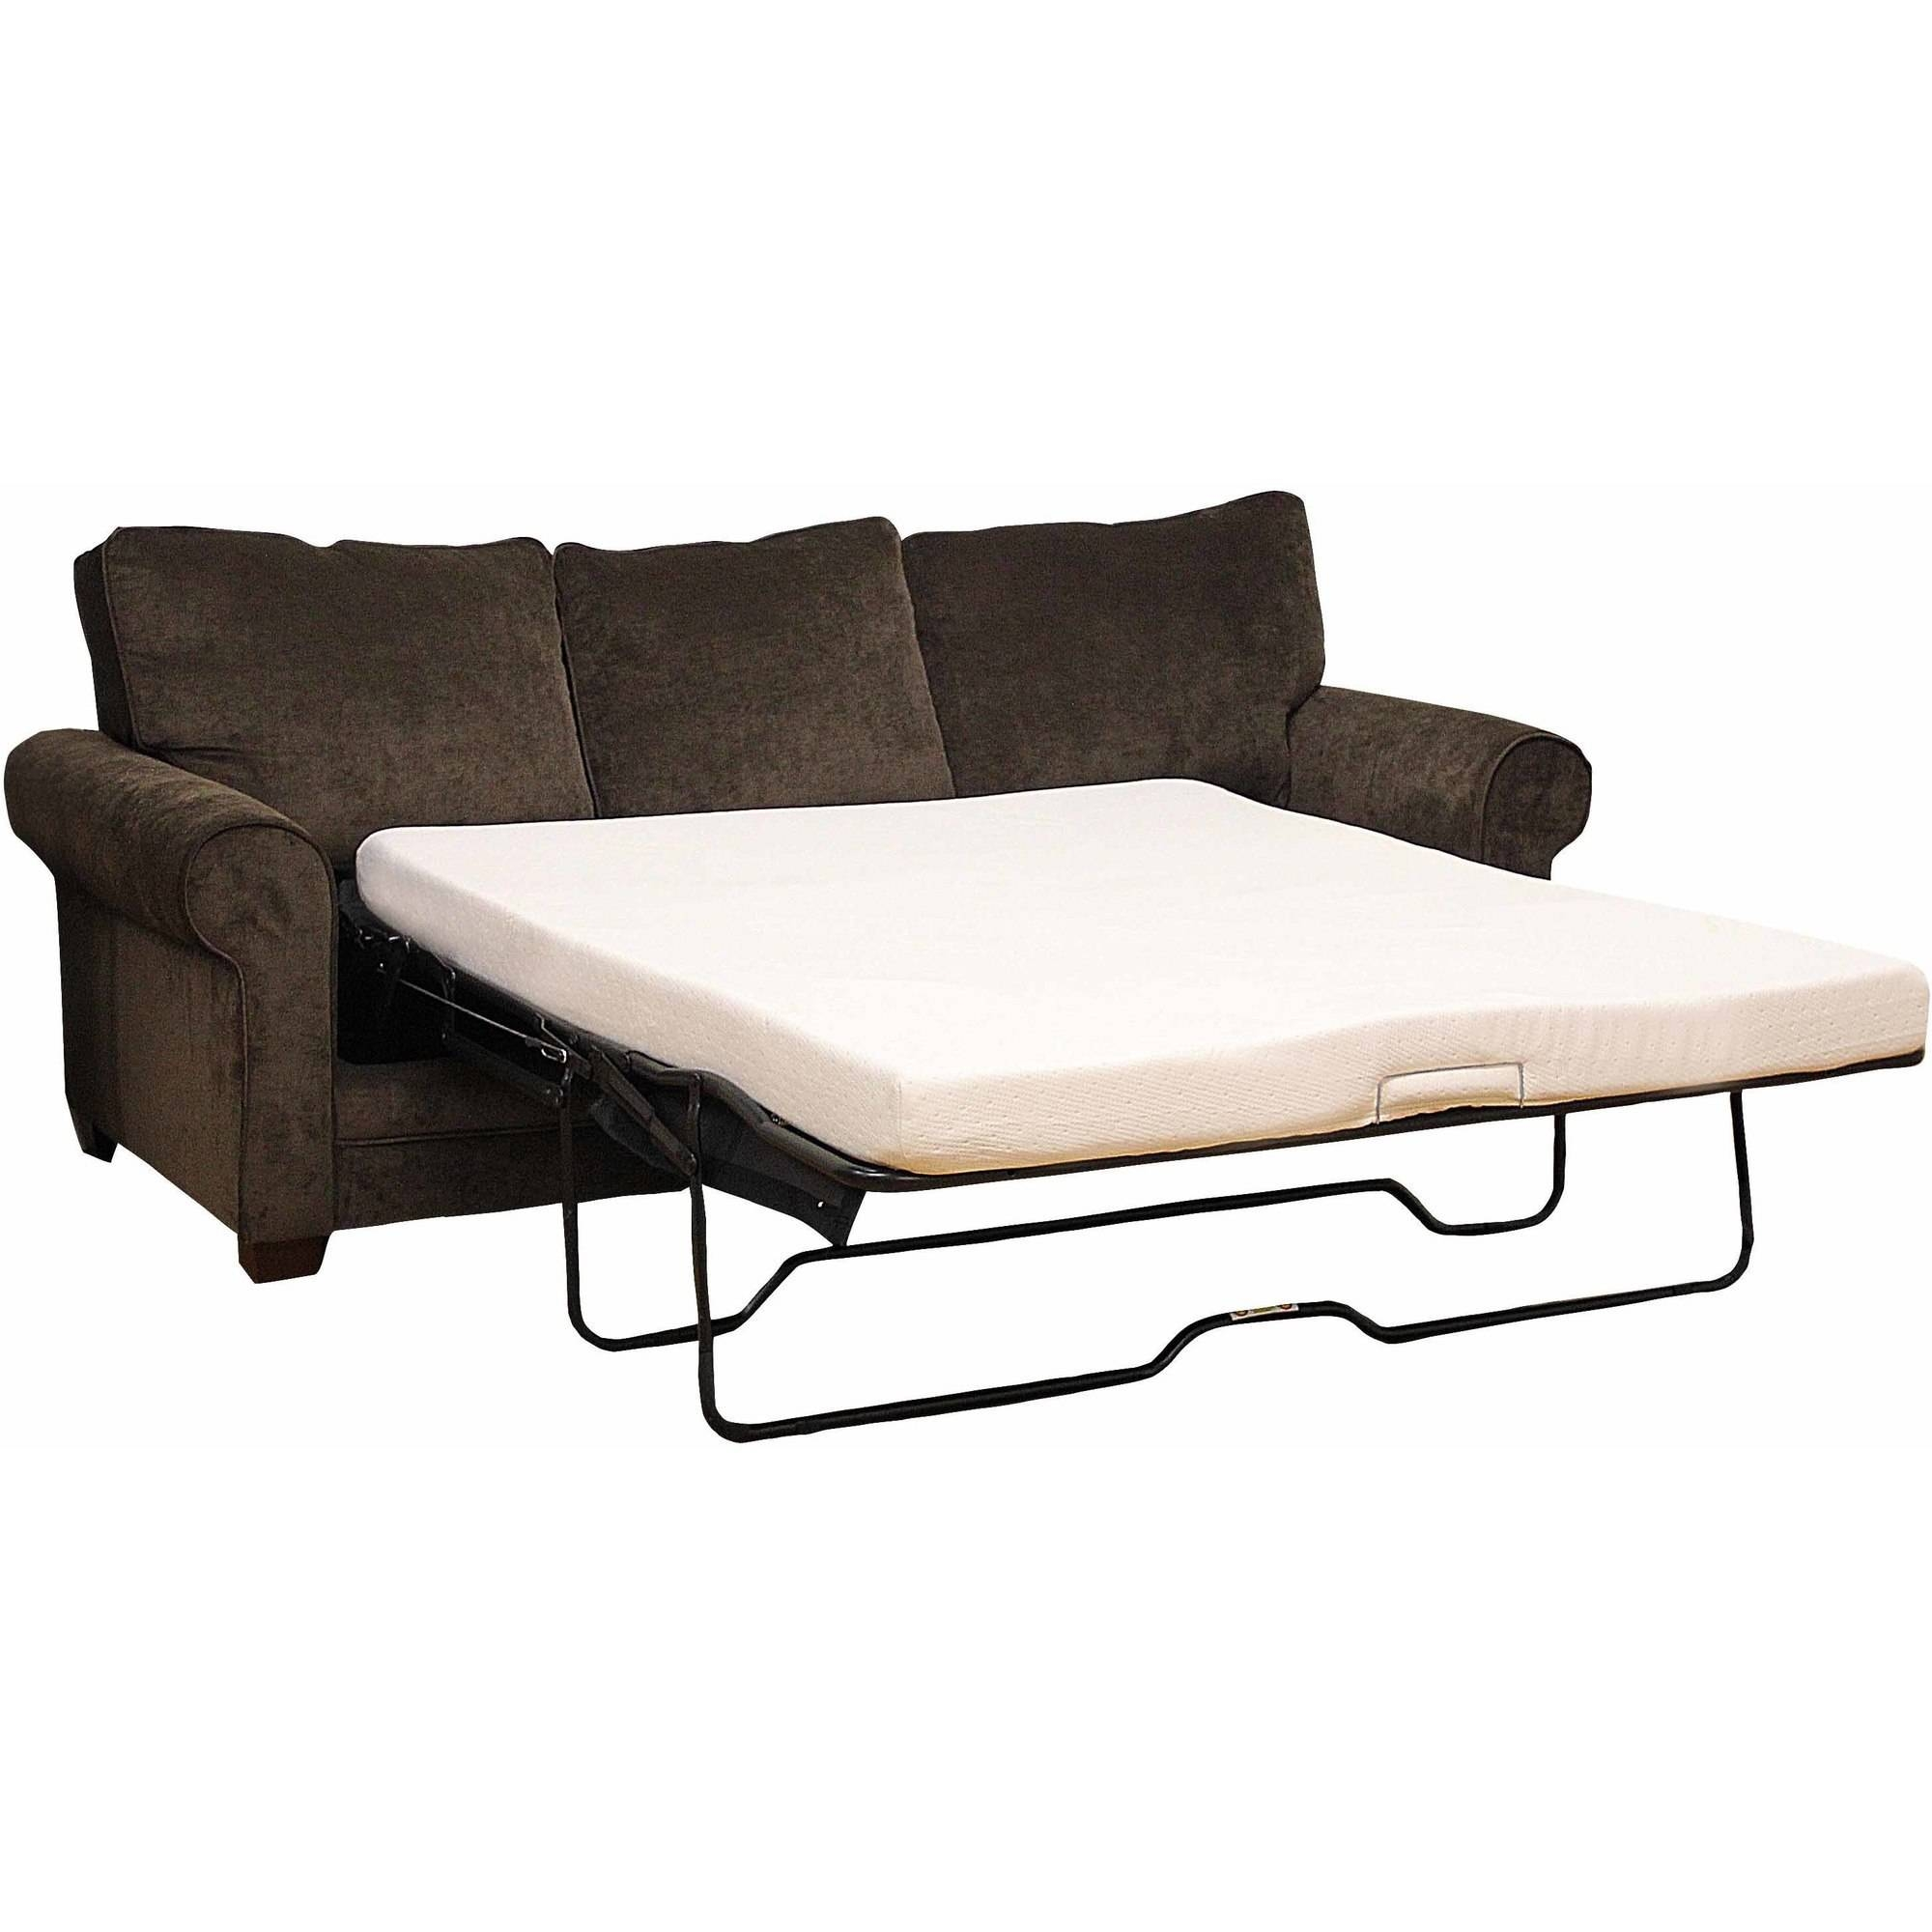 Modern Sleep Memory Foam 45 Sofa Bed Mattress Multiple Sizes Inside Pull Out Sofa Chairs (Image 14 of 15)